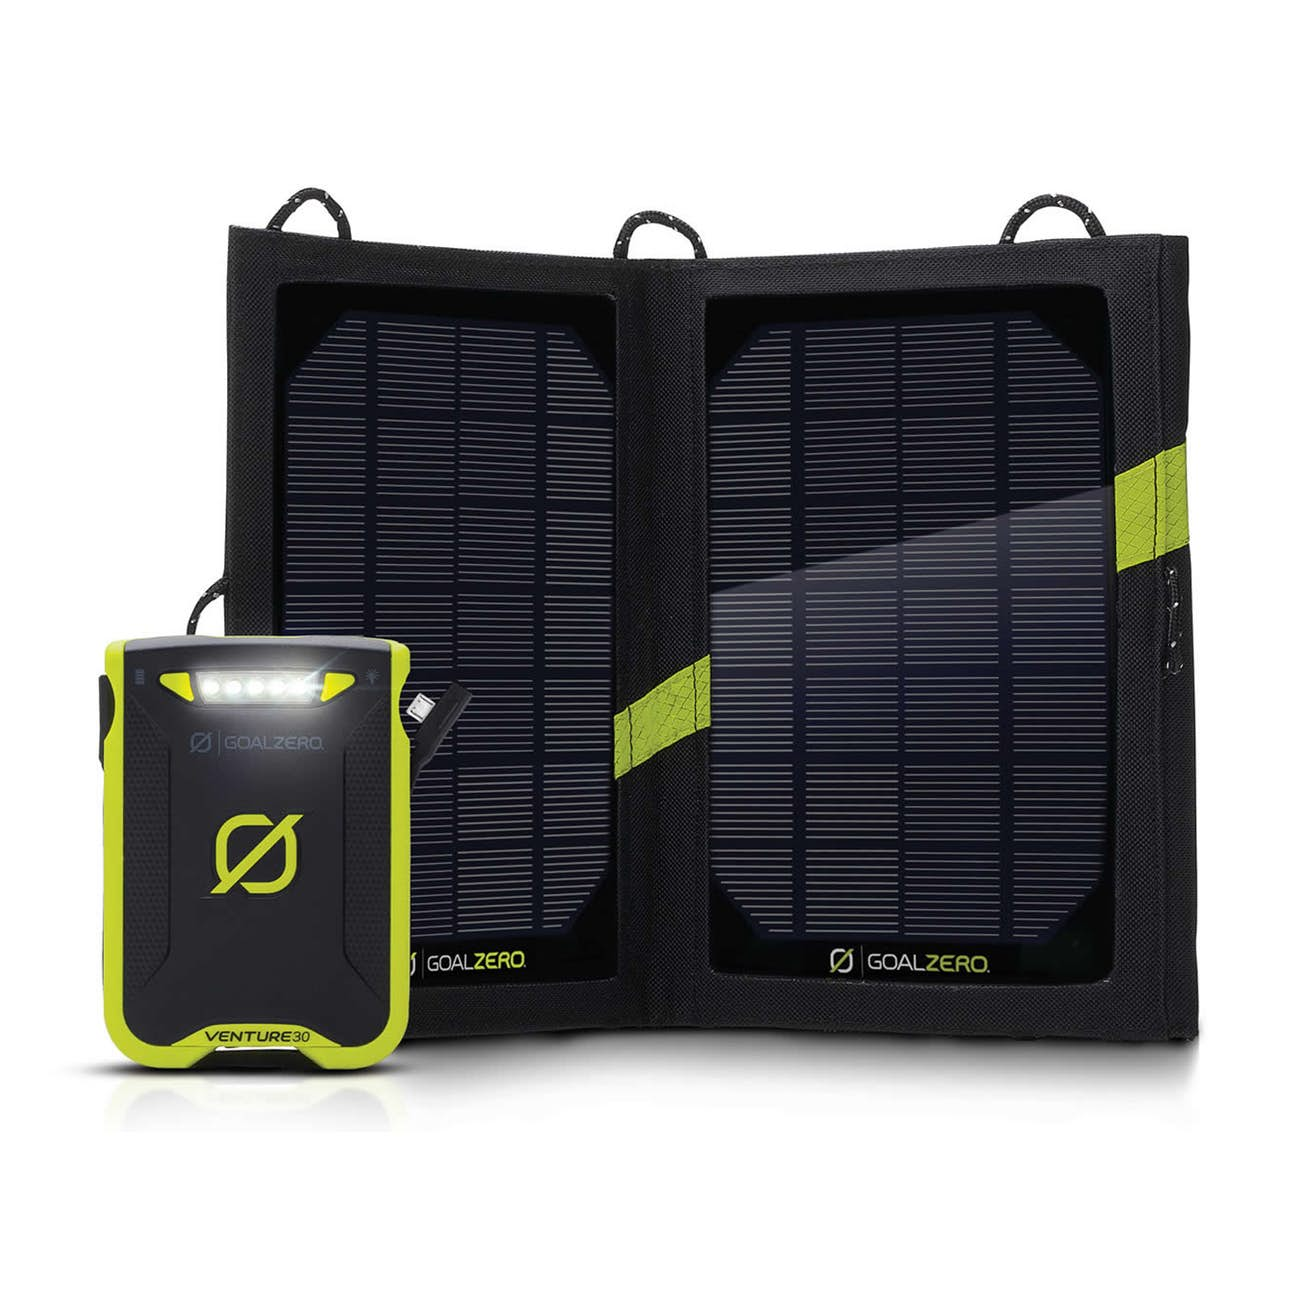 Venture 30 Solar Recharger Front View